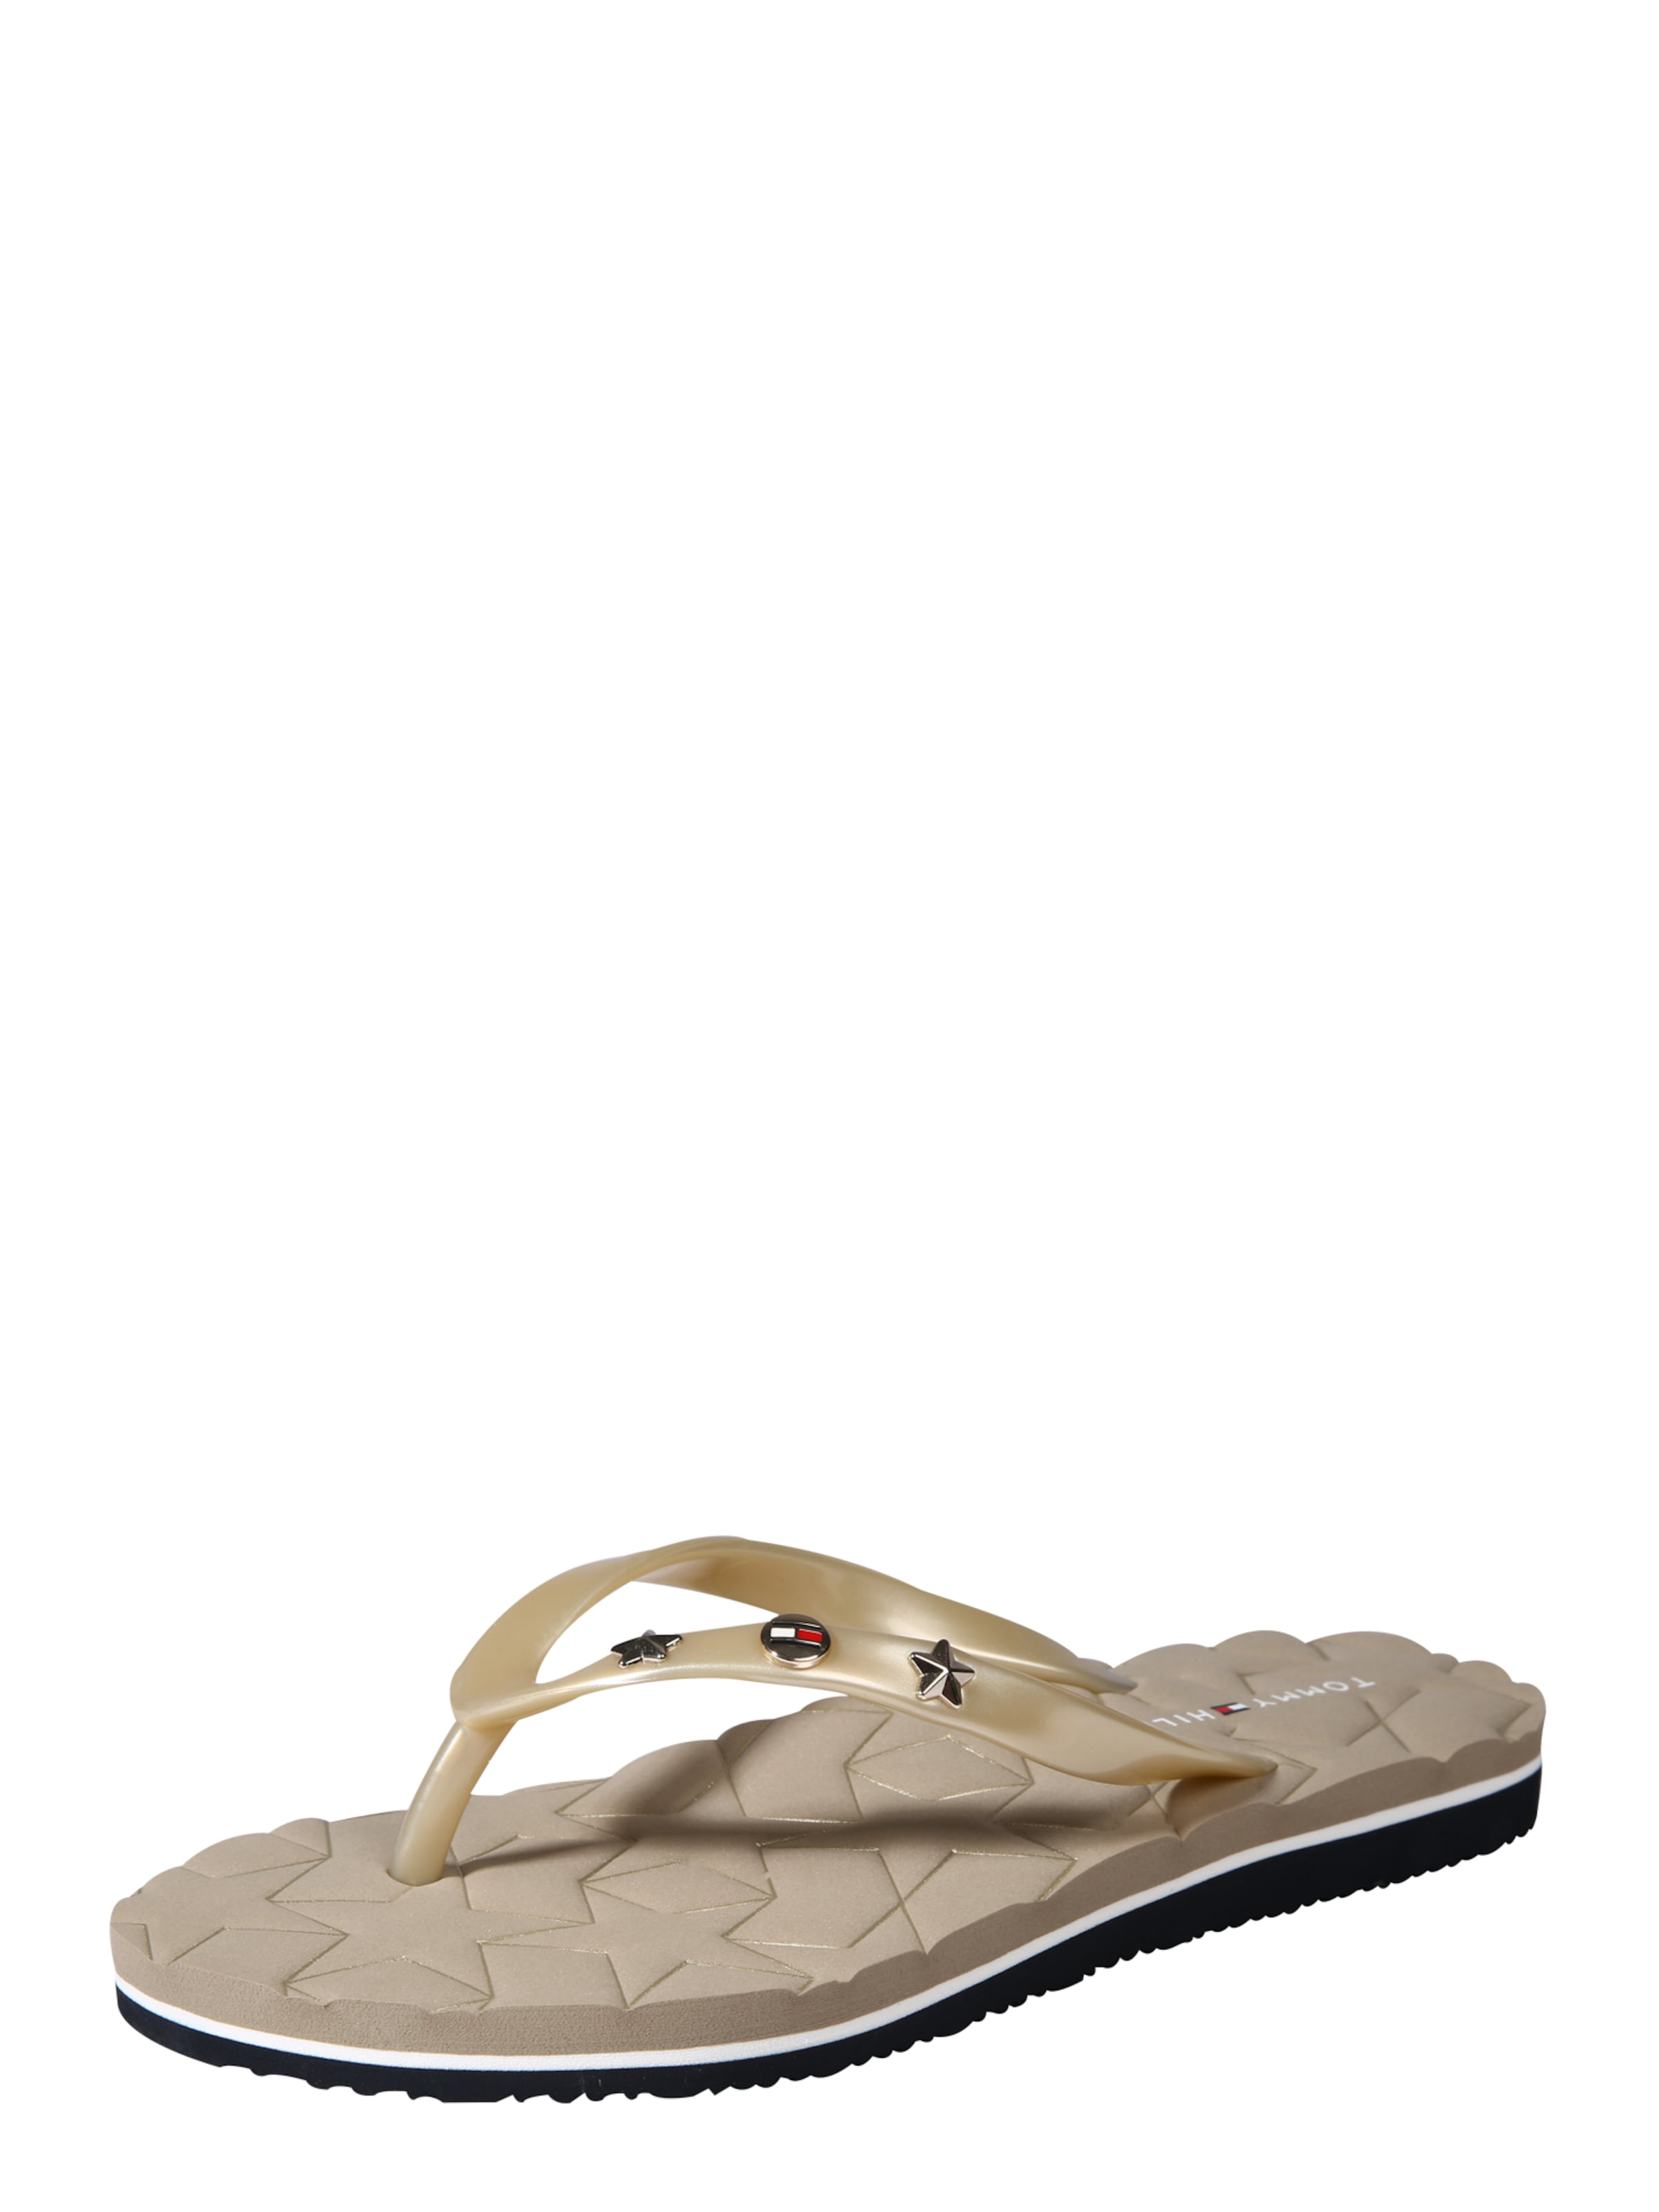 TOMMY HILFIGER Pantolette  METALLIC STAR BEACH